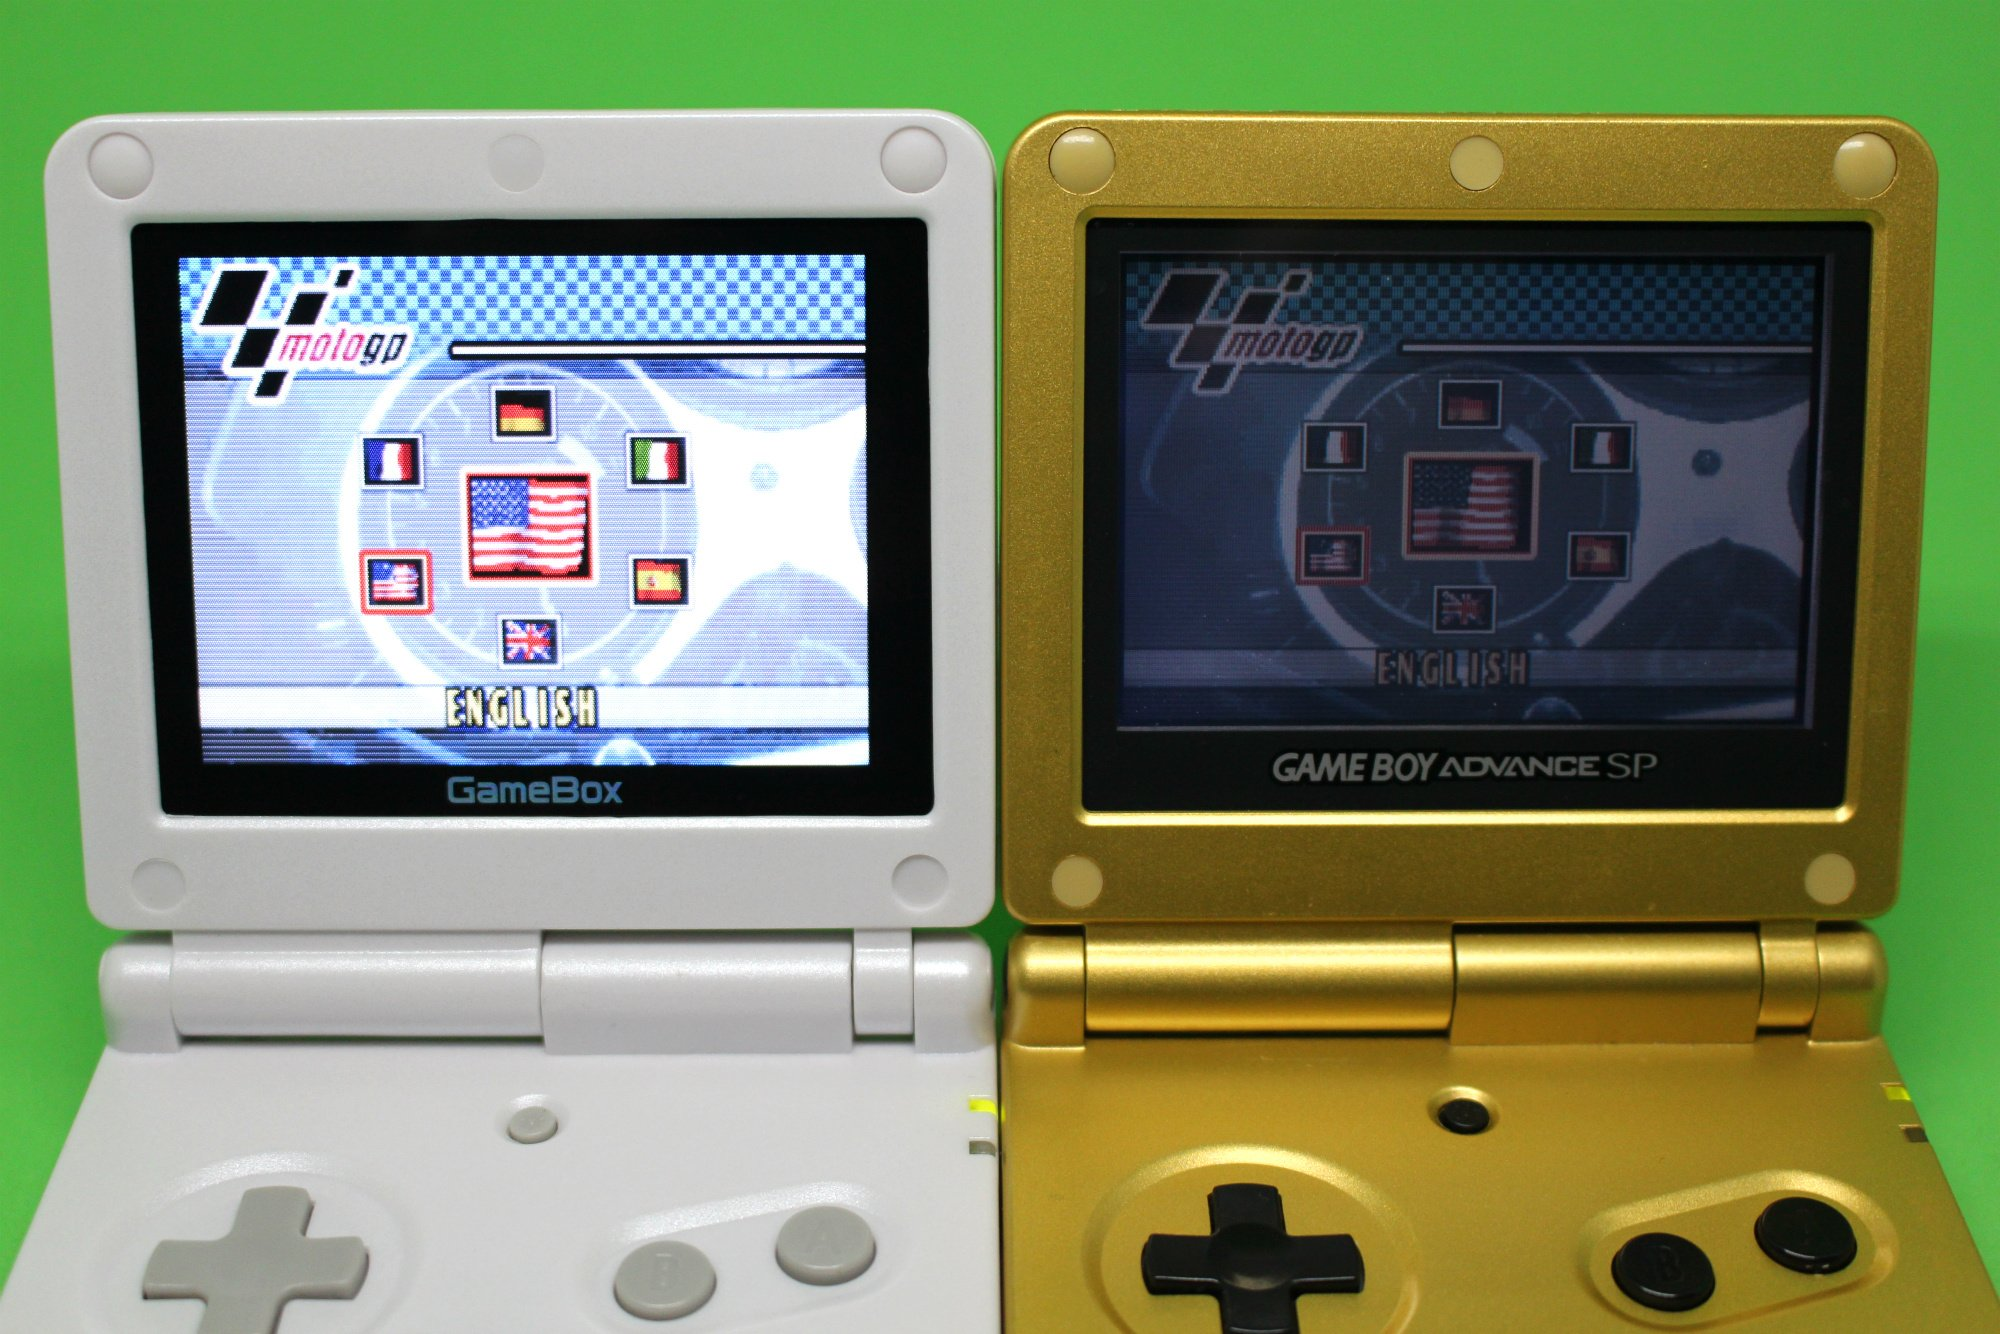 Game boy color online free - One Area Where Clone Systems Often Fall Down Is Interface As We Know Video Game Hardware Makers Spend A Lot Of Money On Making Sure The Controls On Their